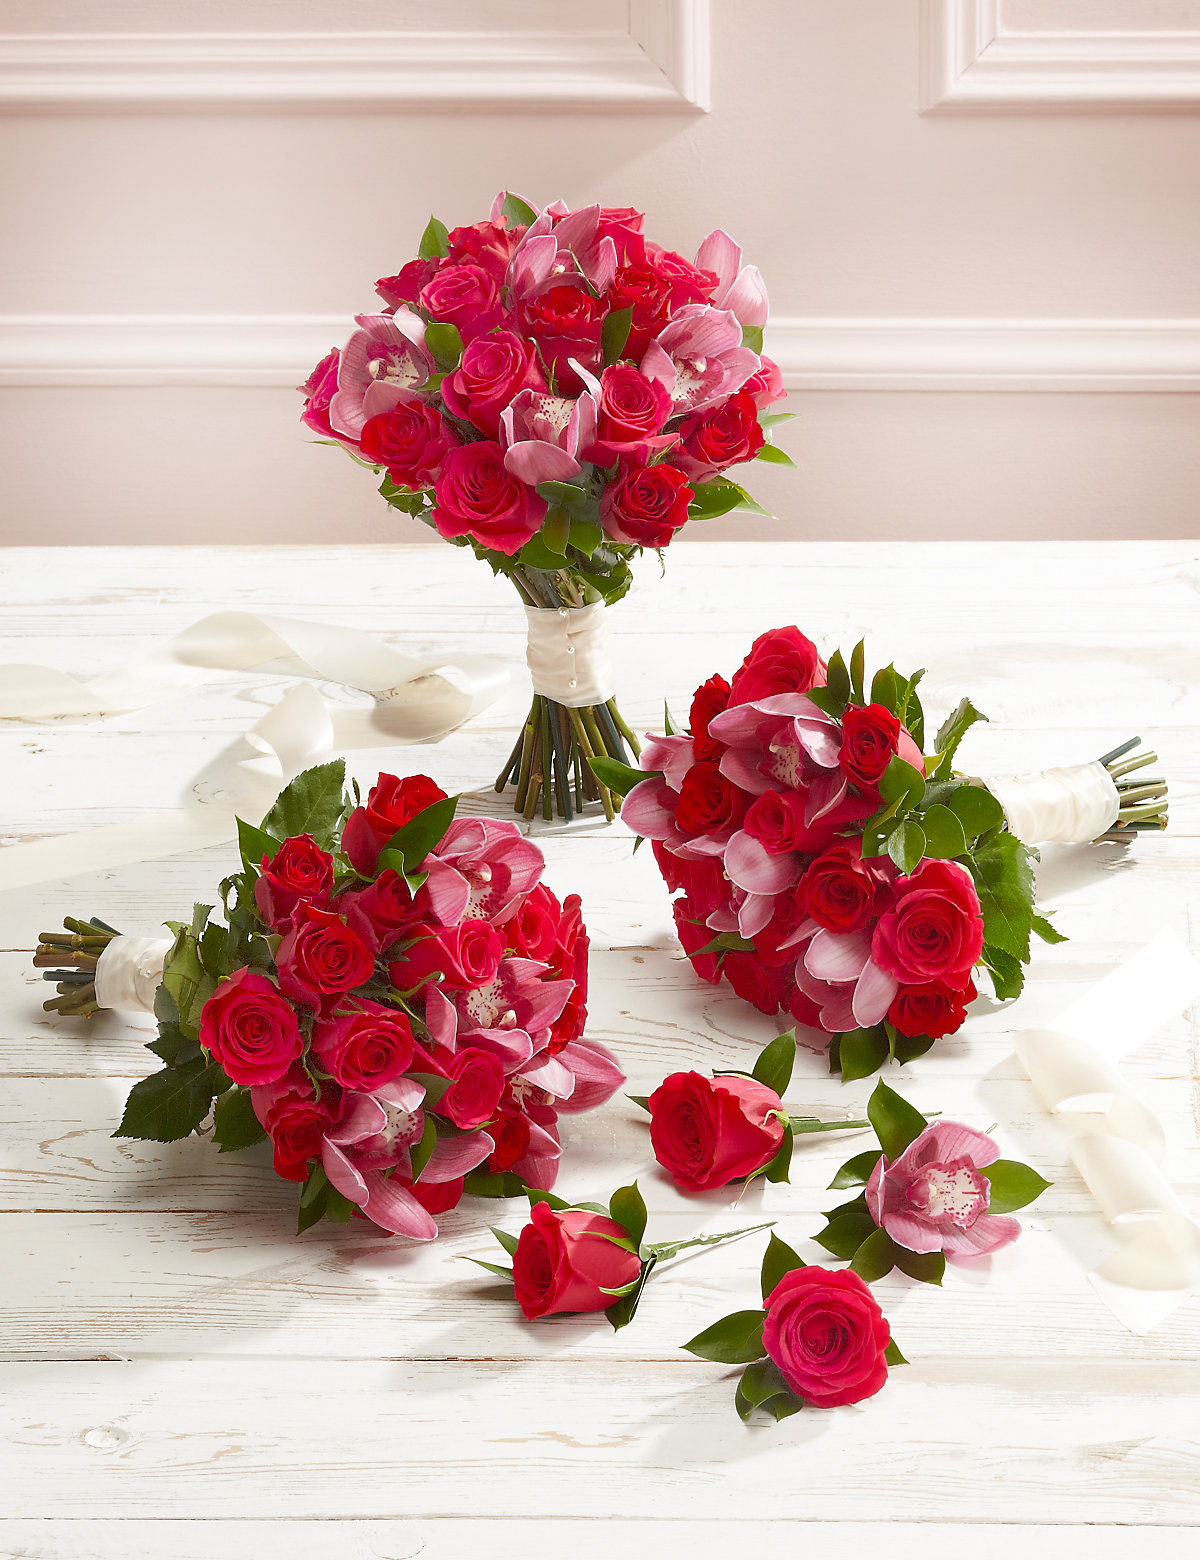 Buy cheap Flower wedding bouquet - compare Flowers prices ...